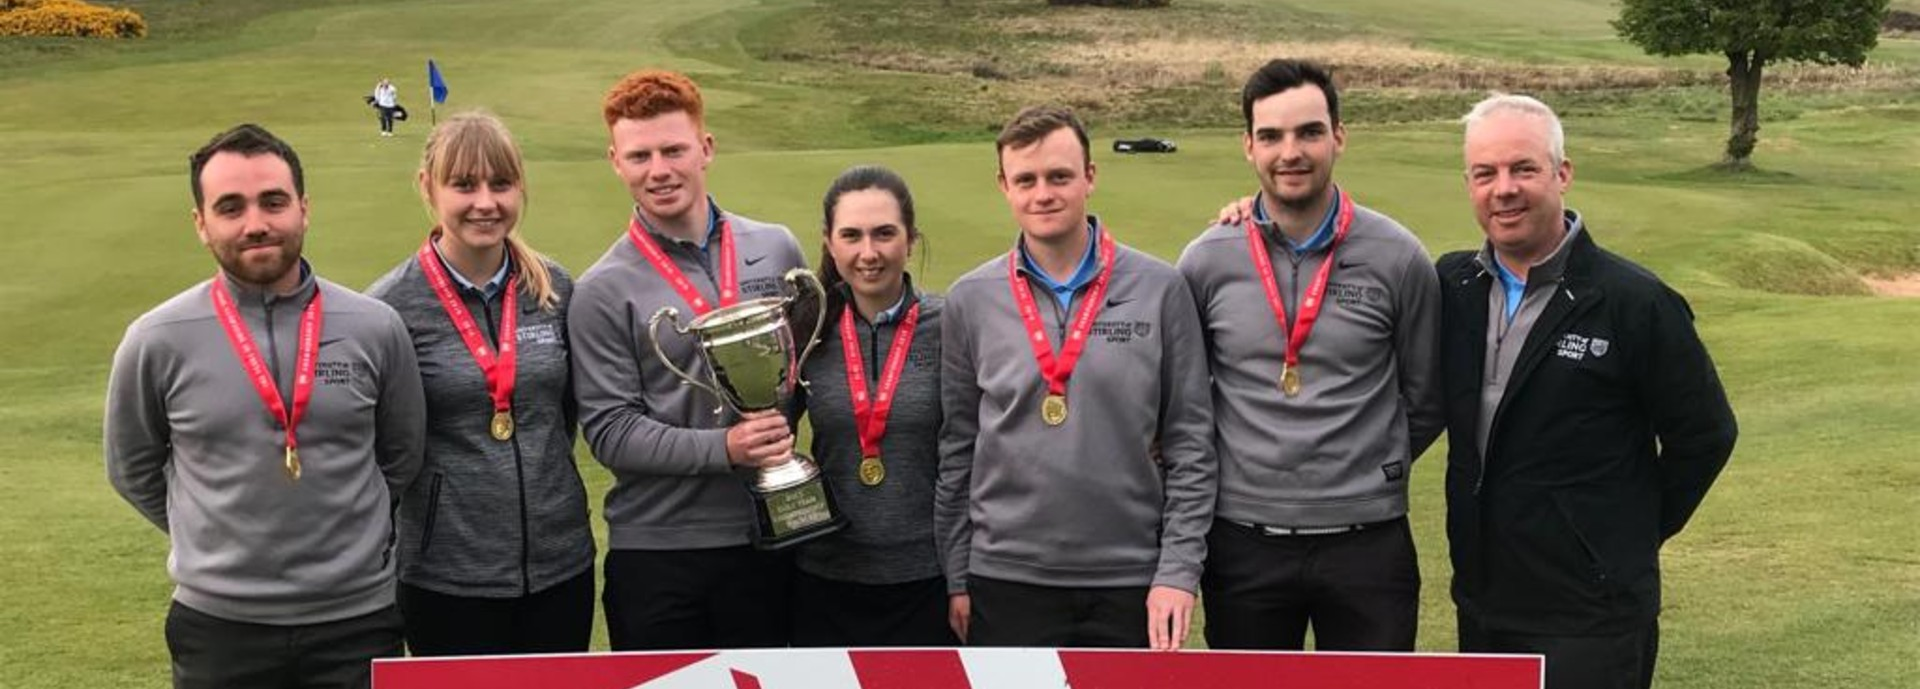 The winning University of Stirling golf team with the BUCS Championship trophy